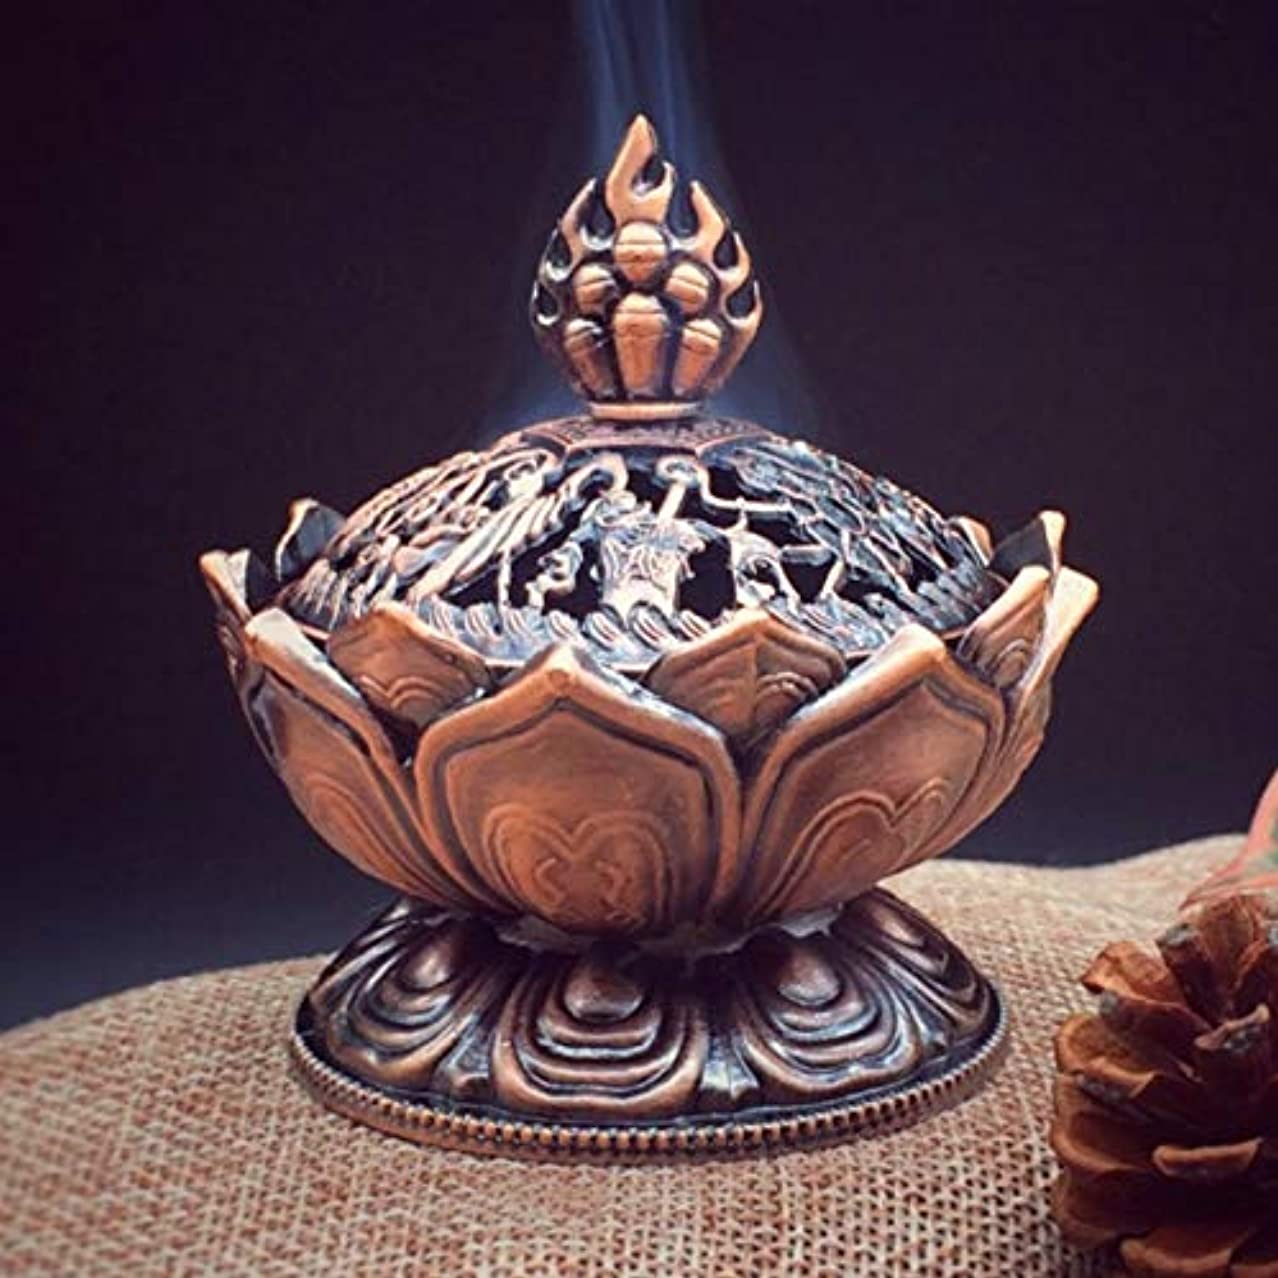 古風な炎上花瓶Holy Tibetan Lotus Designed Incense Burner Zinc Alloy Bronze Mini Incense Burner Incensory Metal Craft Home Decor